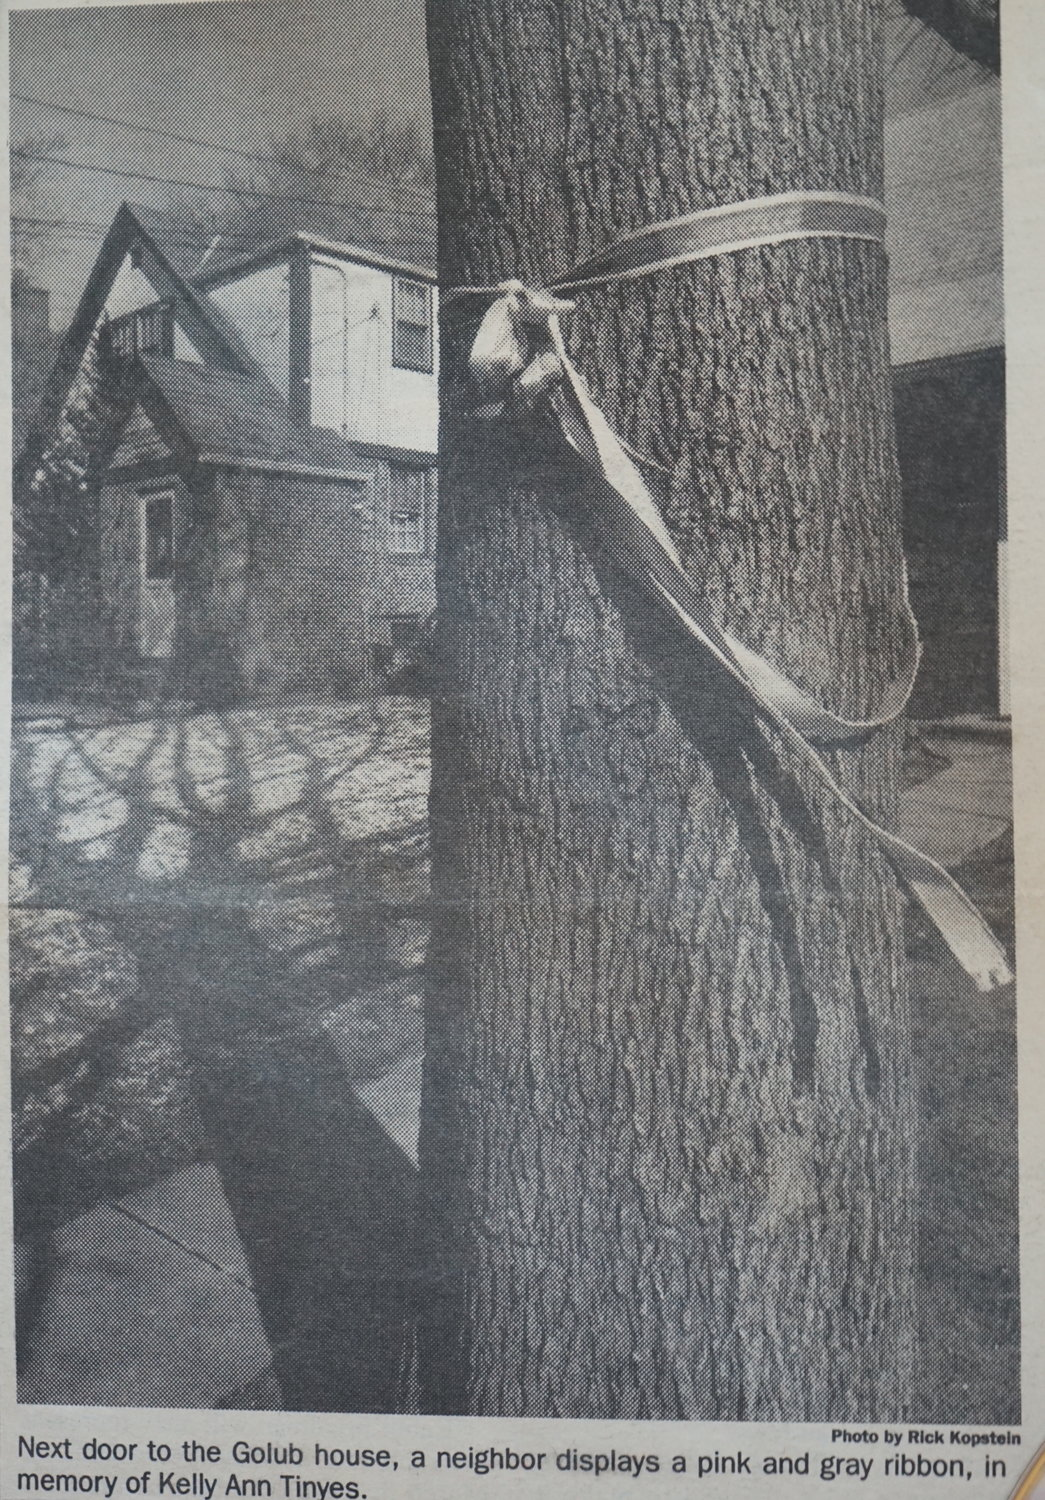 A photo from a March 1990 issue of the Nassau Herald. A pink and gray ribbon was tied to a tree neighboring the Golub house, in memory of Kelly Ann Tinyes.